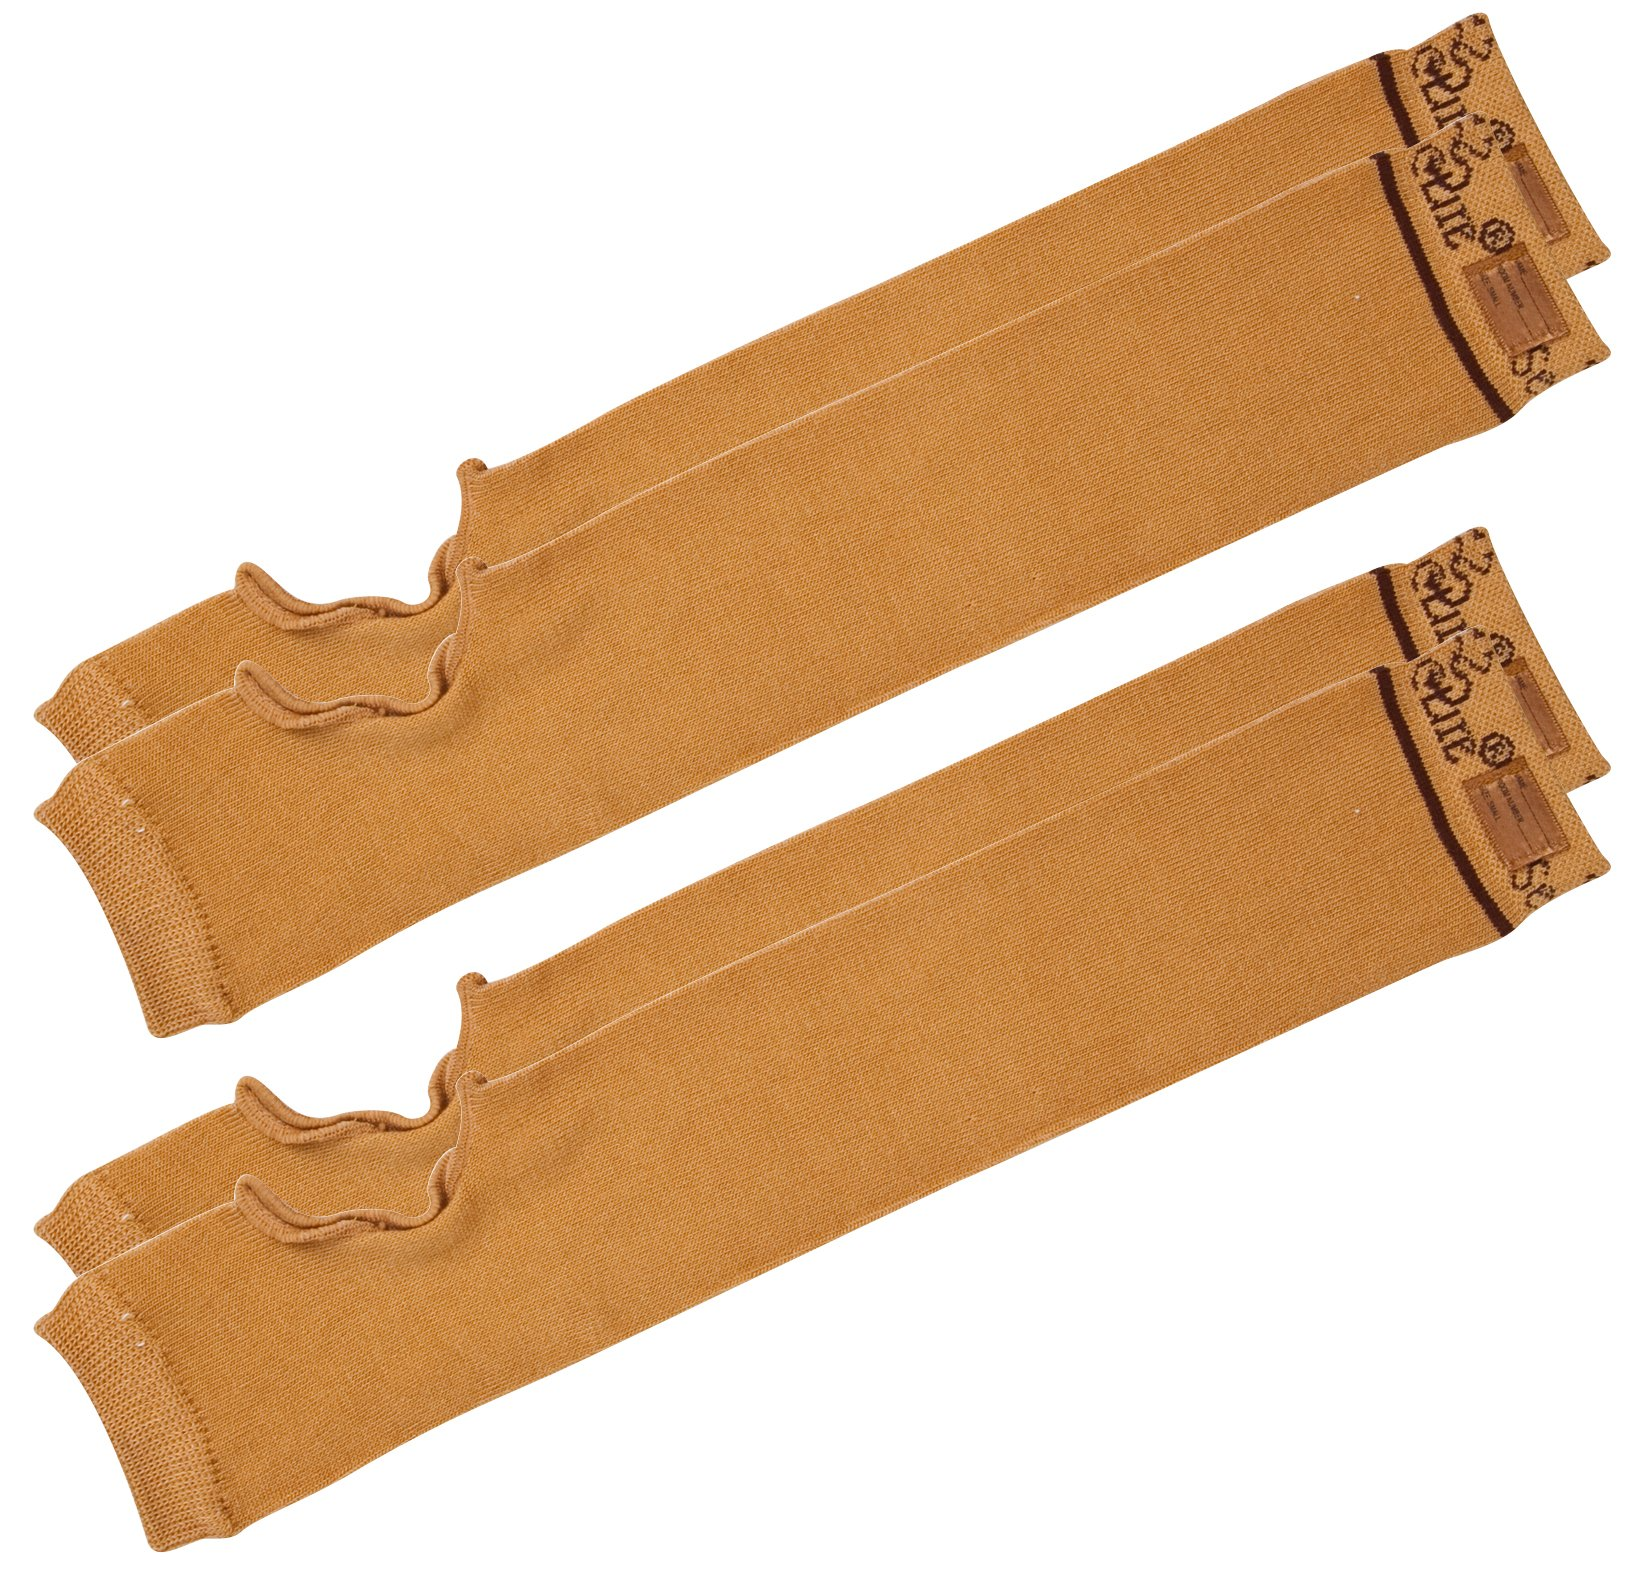 SecureSleeves® (2 Pairs) Geri Sleeves for Arm Protection, Brown - Protects Sensitive Thin Skin from Tears & Bruising (Medium: 15.5''-16'' x 3.5'')